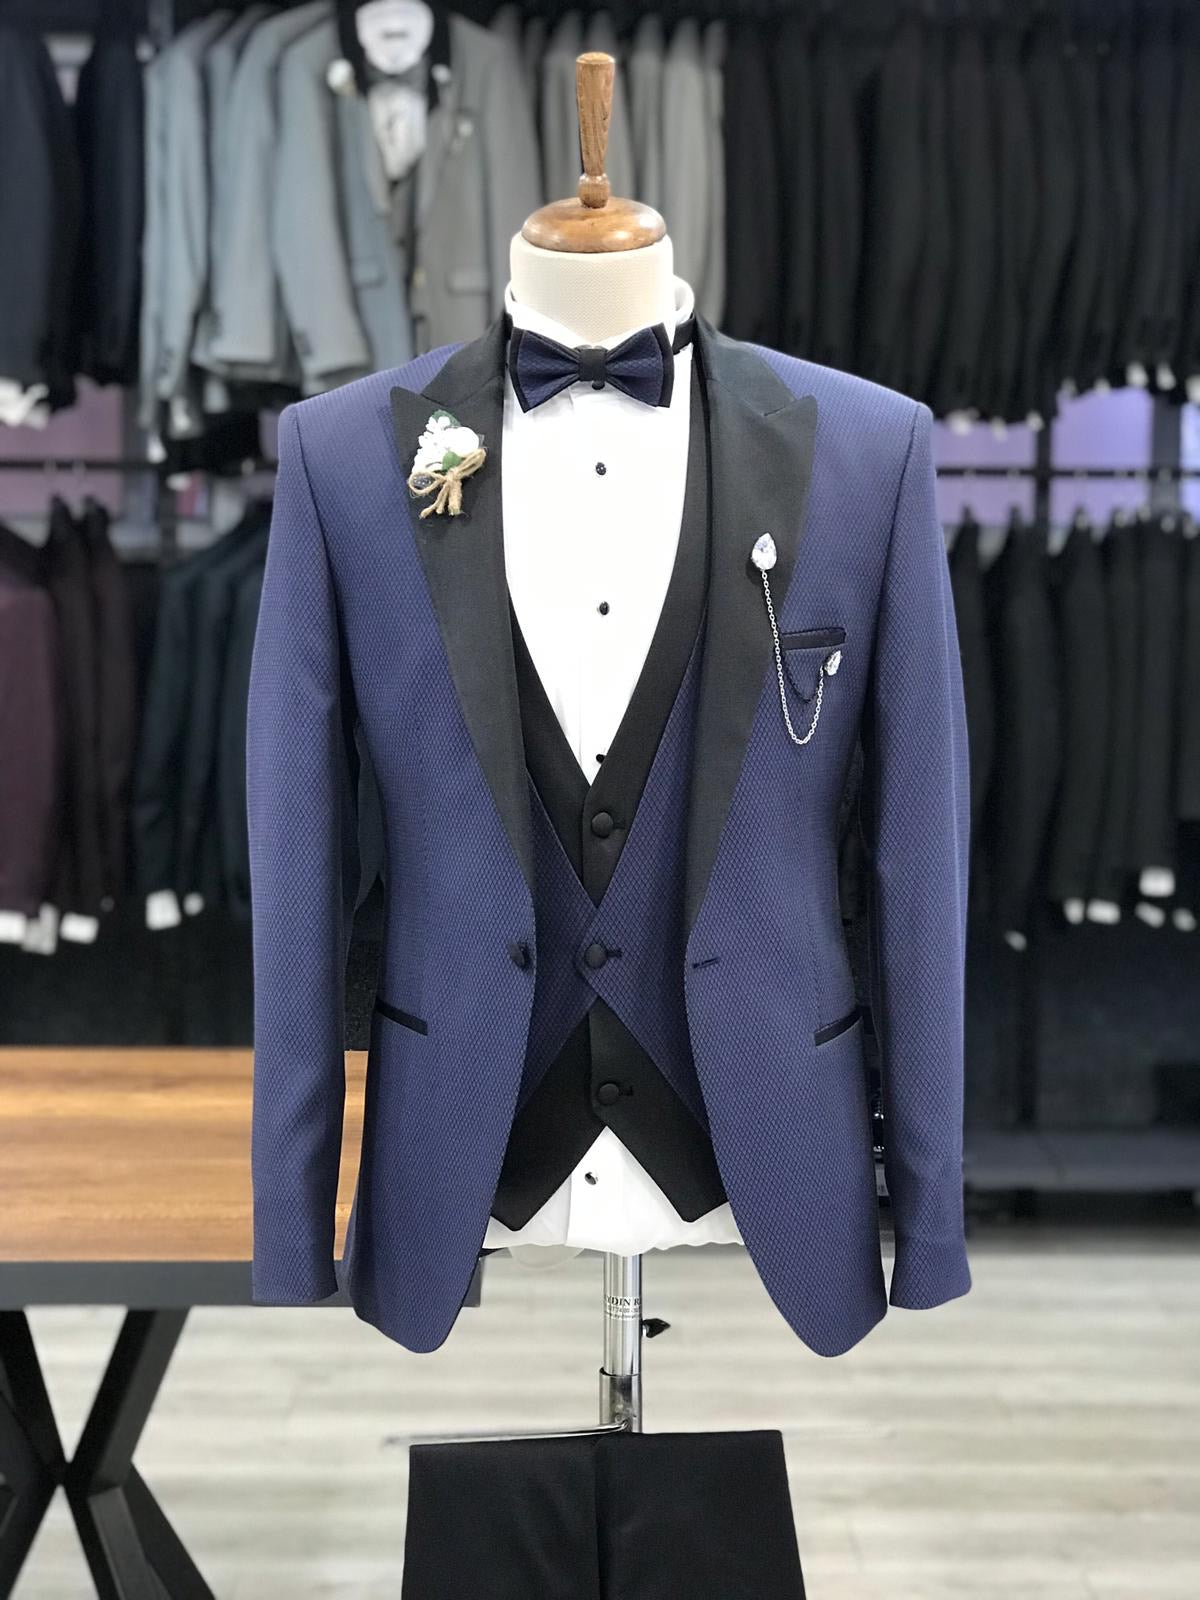 Wellington Navy Blue Slim Fit Peak Lapel Tuxedo